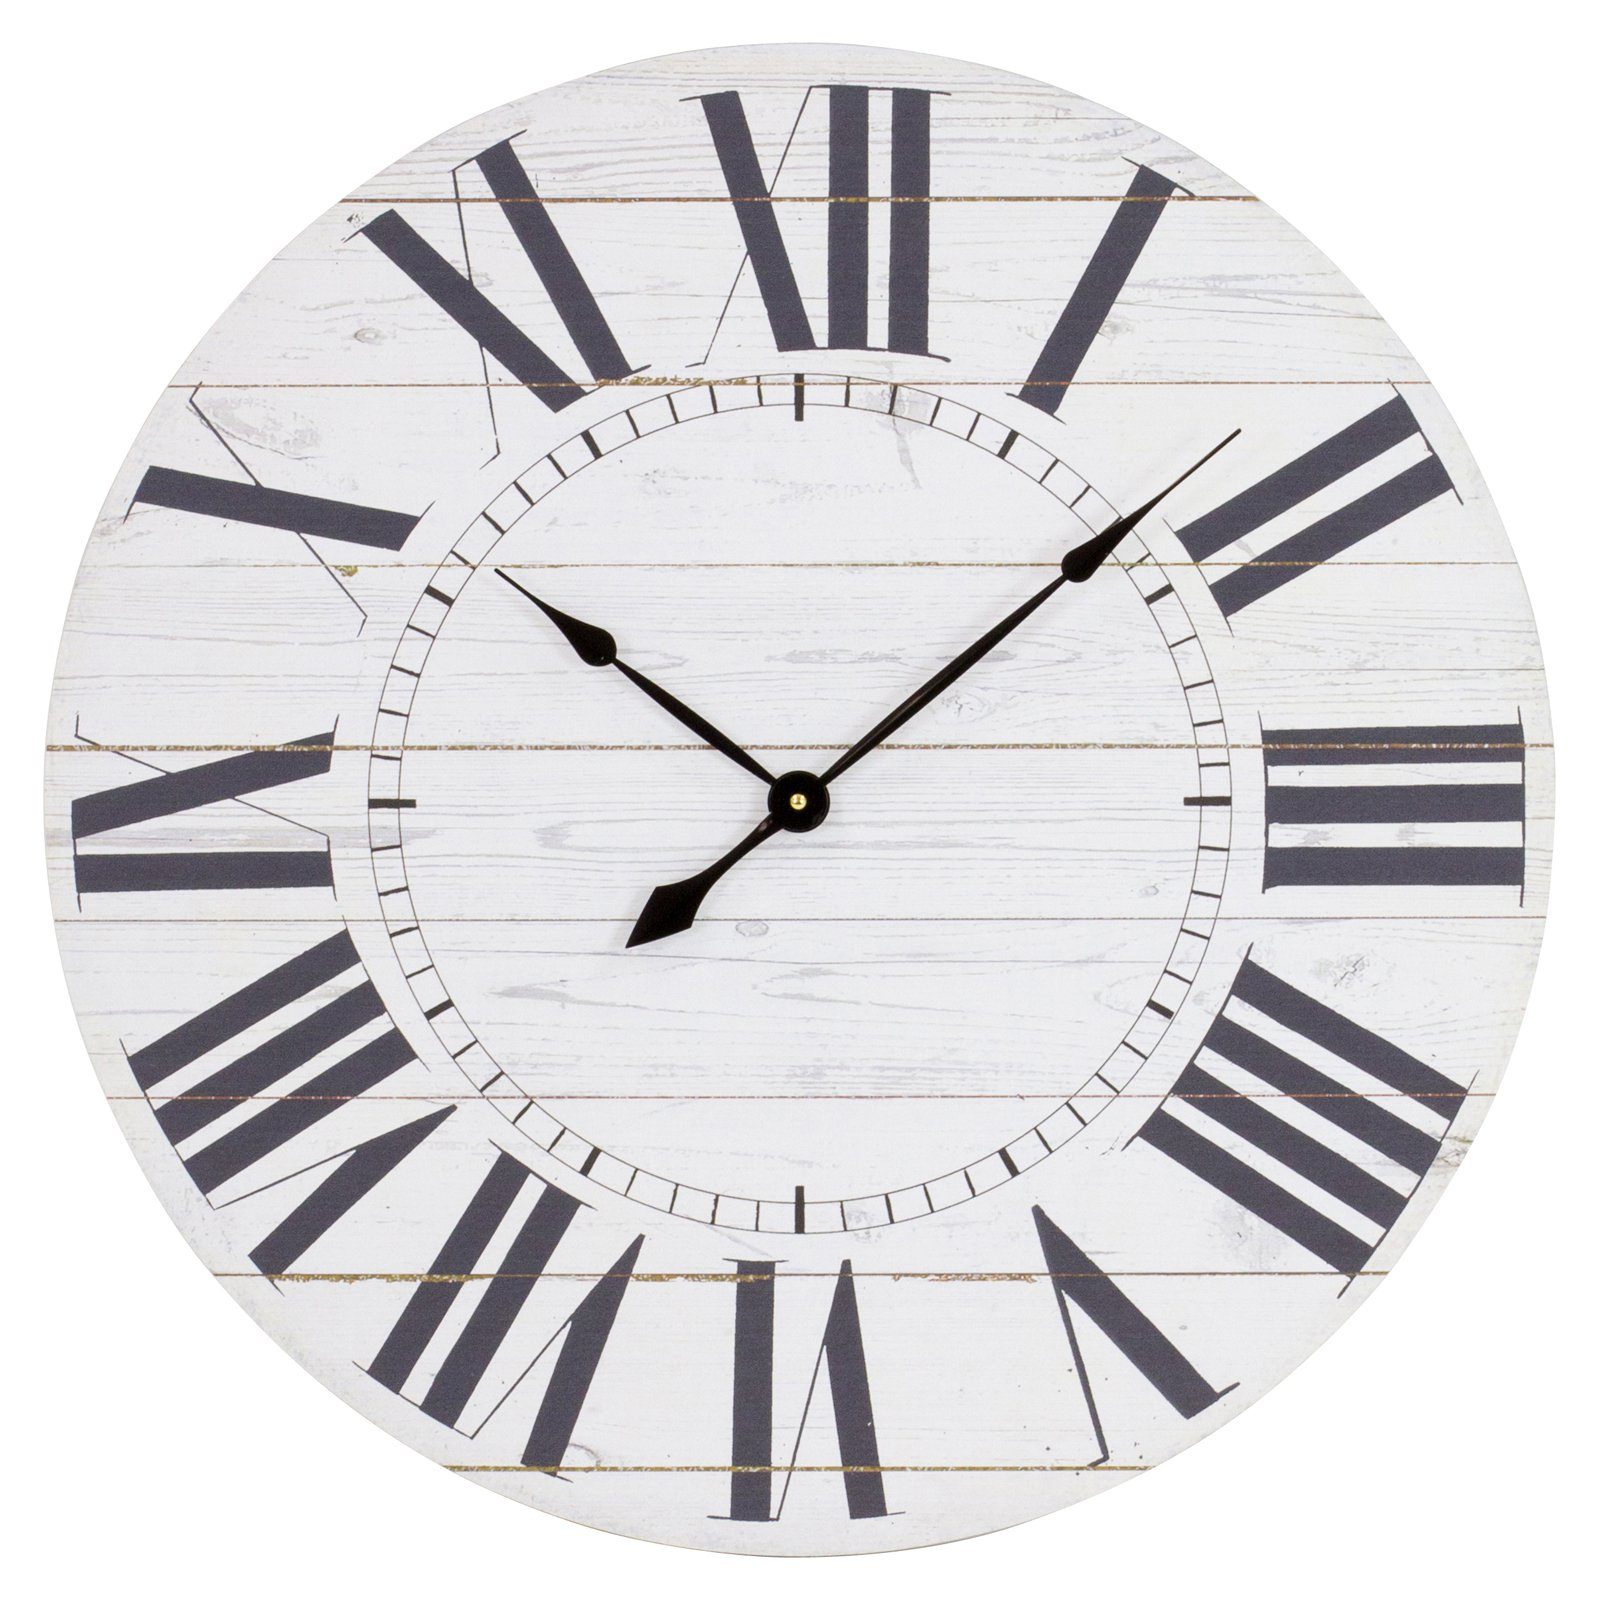 Aspire Home Accents Estelle French Country 23 in. Wall Clock with Shiplap Face